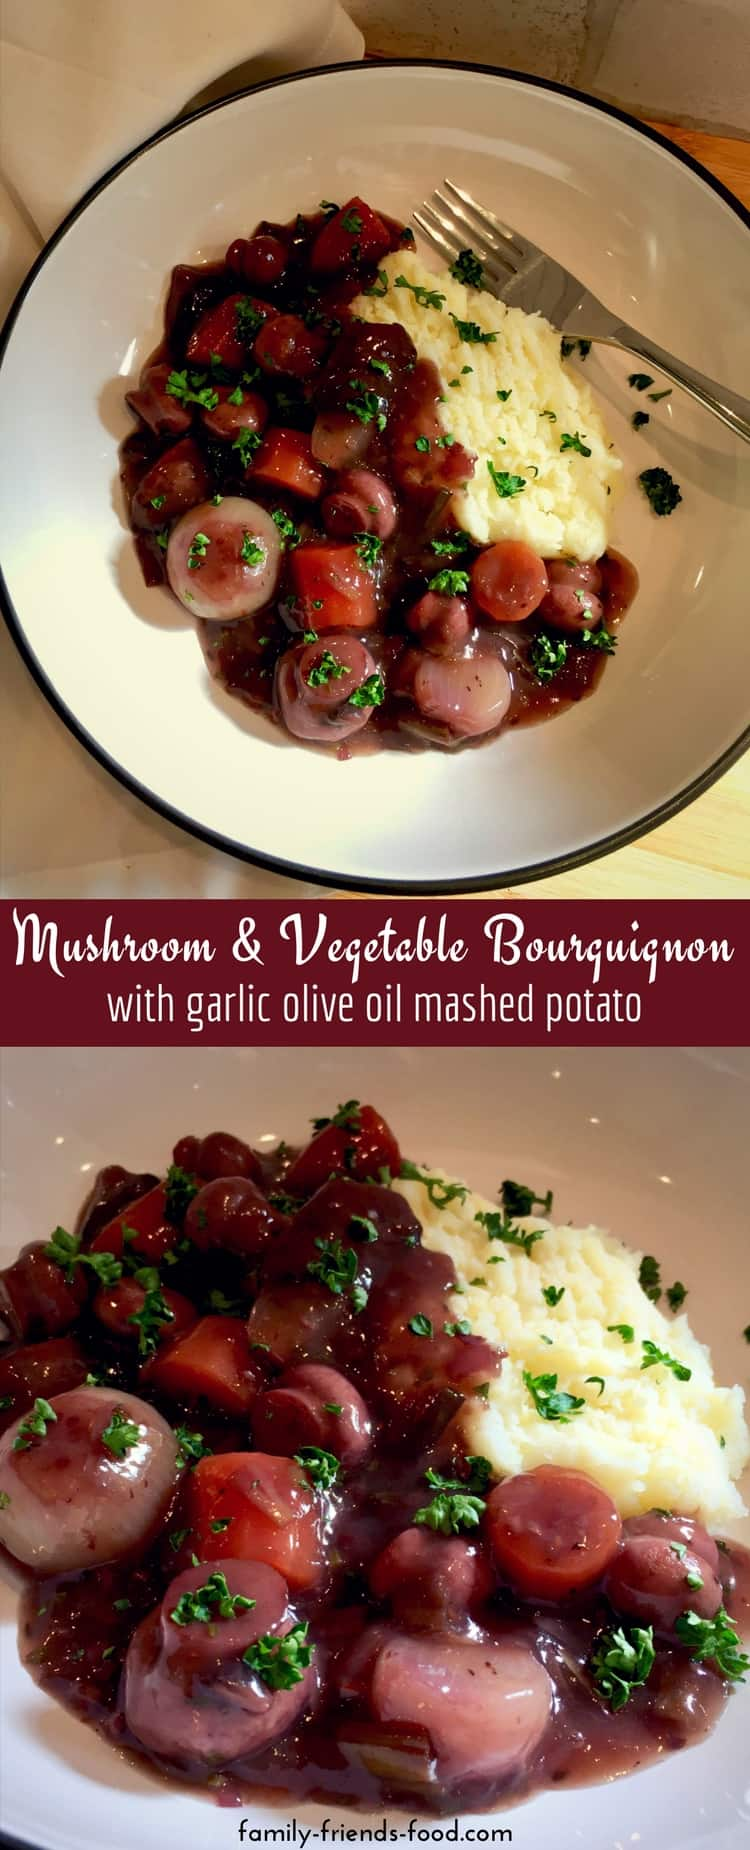 Mushroom &vegetable bourguignon is a rich and hearty vegan dish of fresh vegetables and aromatic herbs simmered in a delicious red wine sauce. Served with garlic olive oil mash it makes a fabulous gluten-free family dinner.